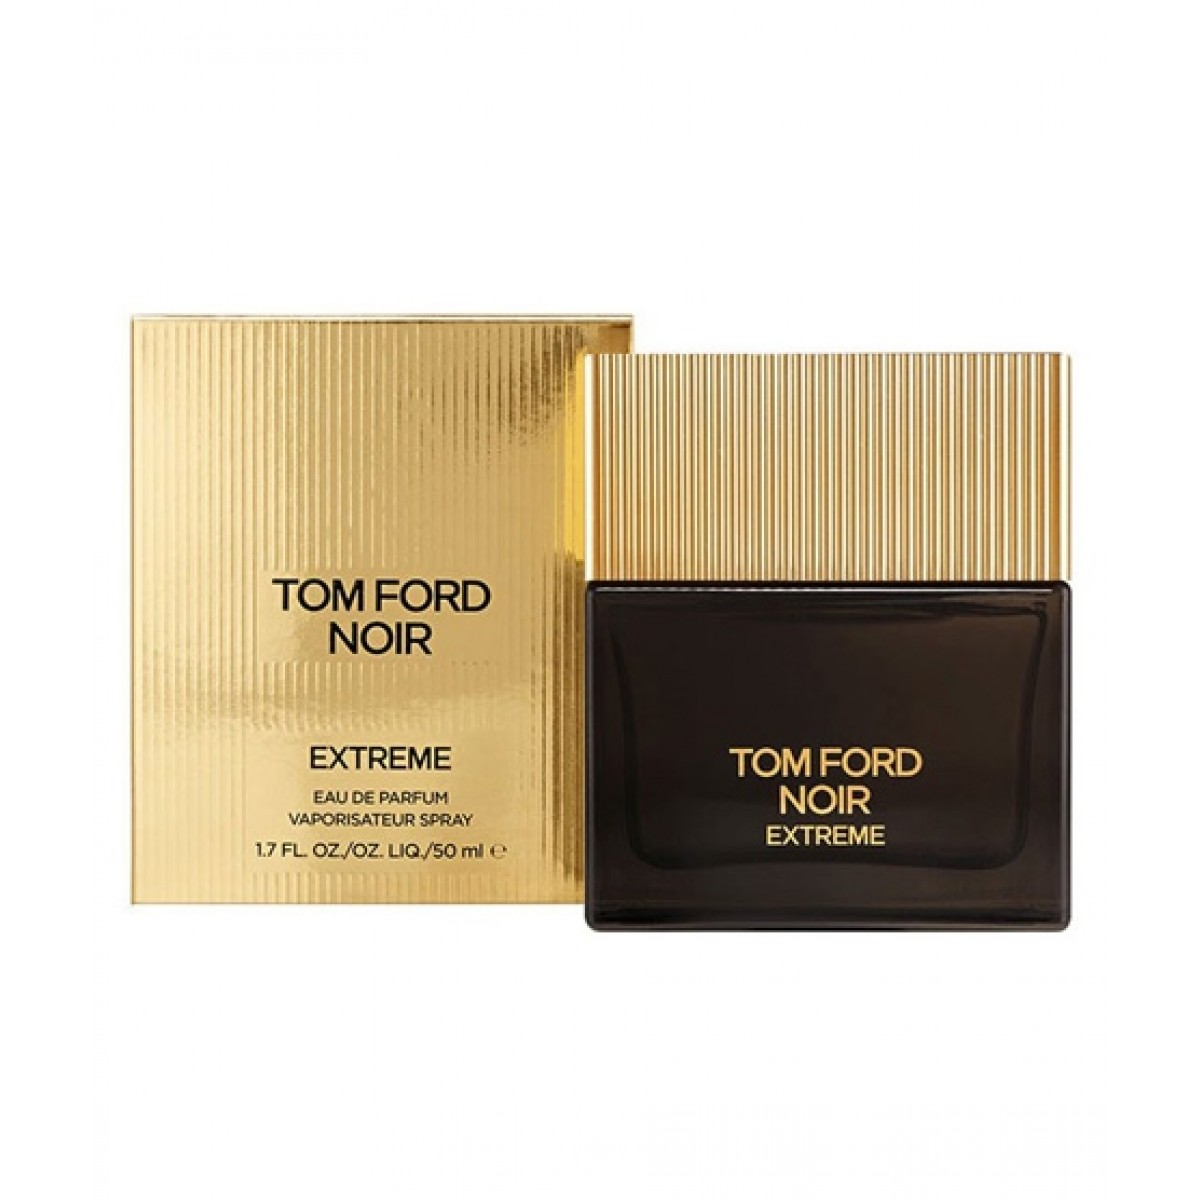 e67925a4273c tom ford noir extreme perfume for men price in pakistan